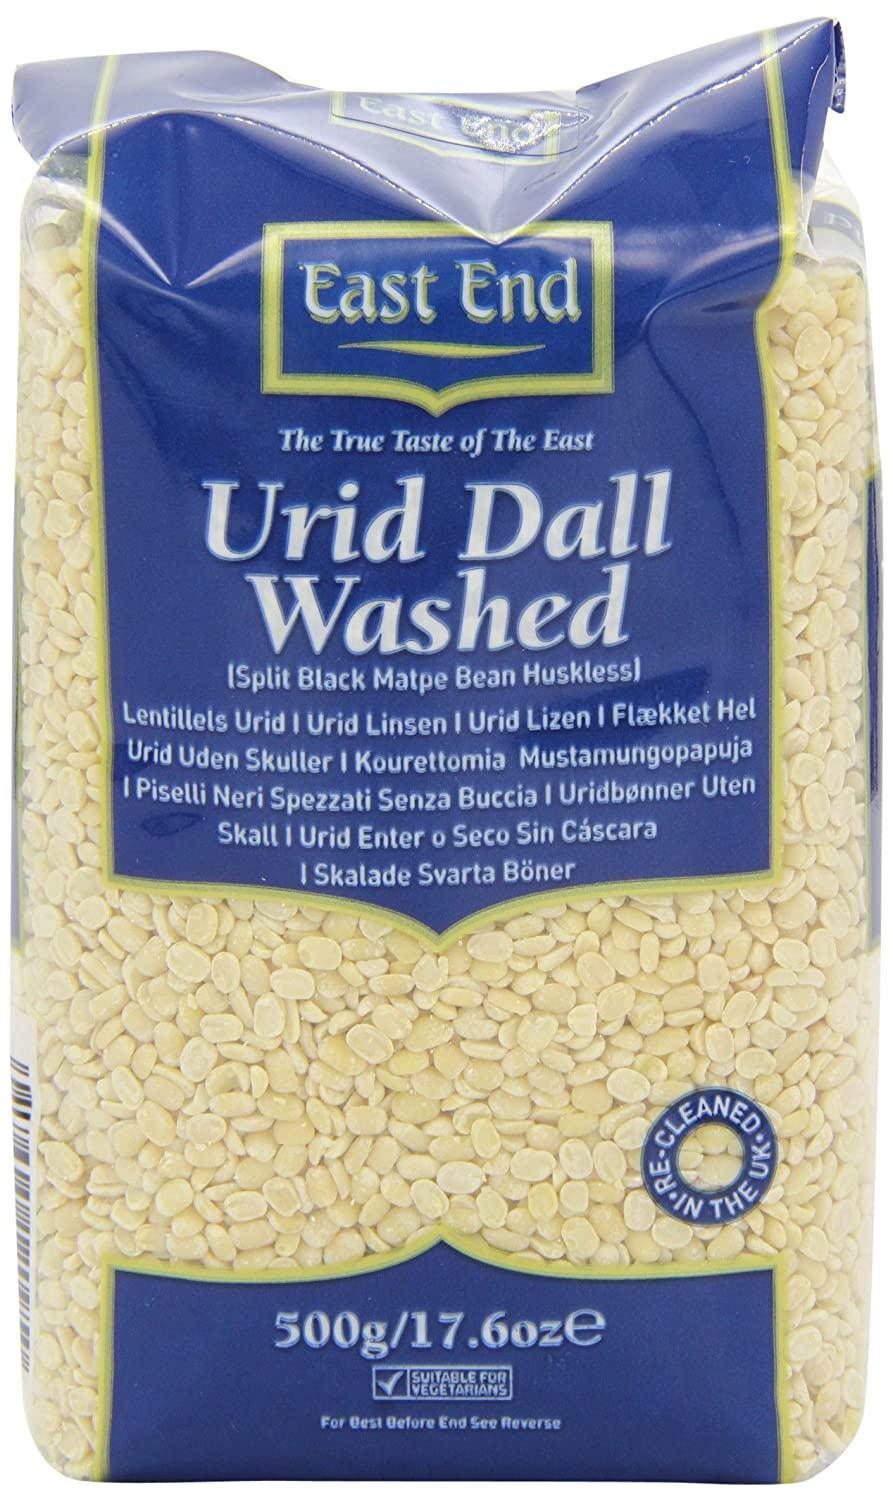 East End Urid Dall Washed 500g